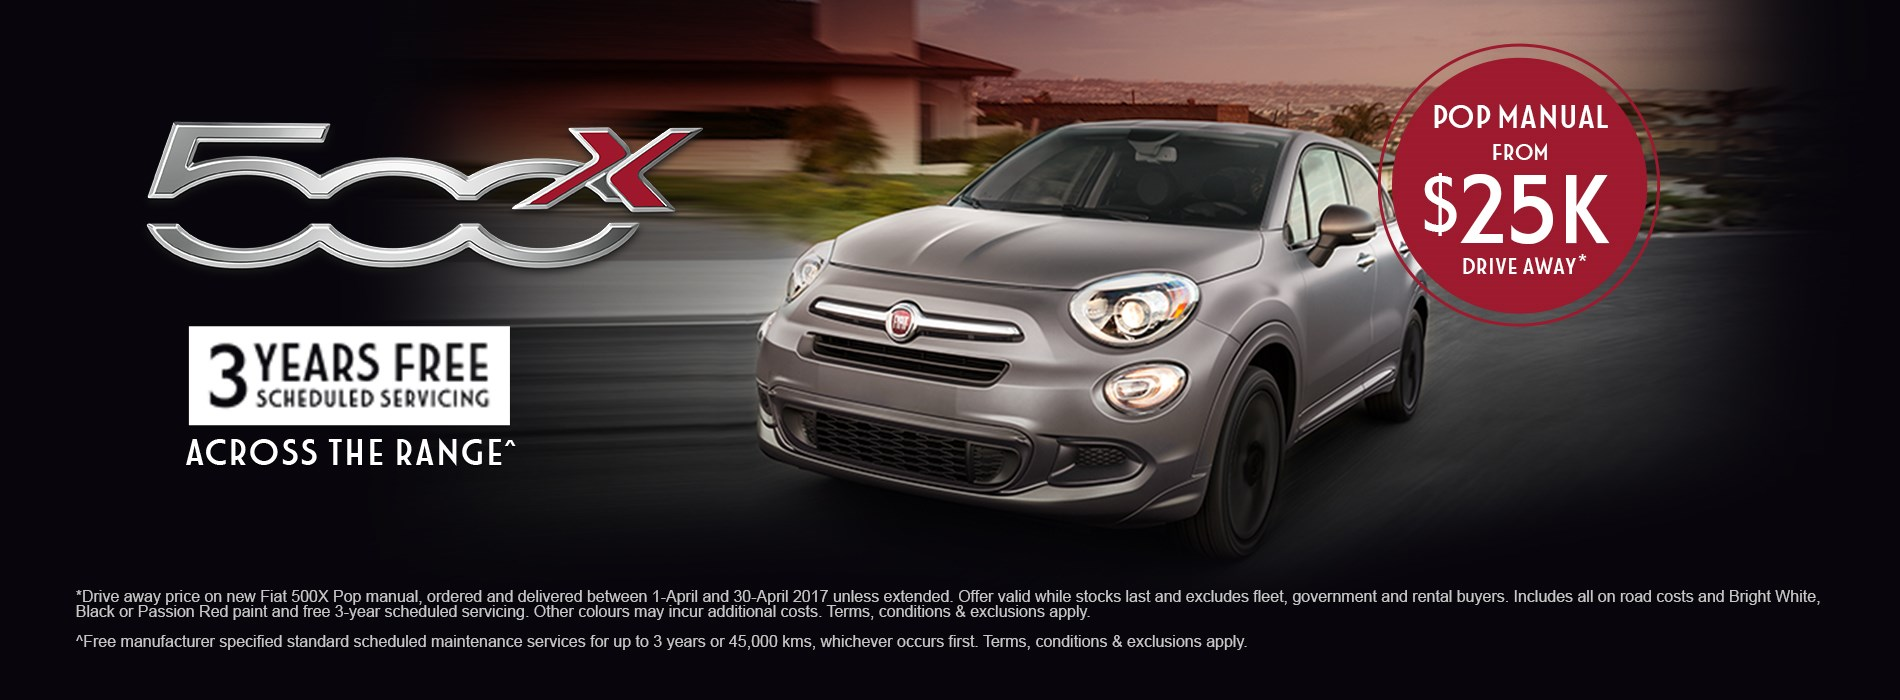 Fiat 500x pop manual $25k Drive Away Offer